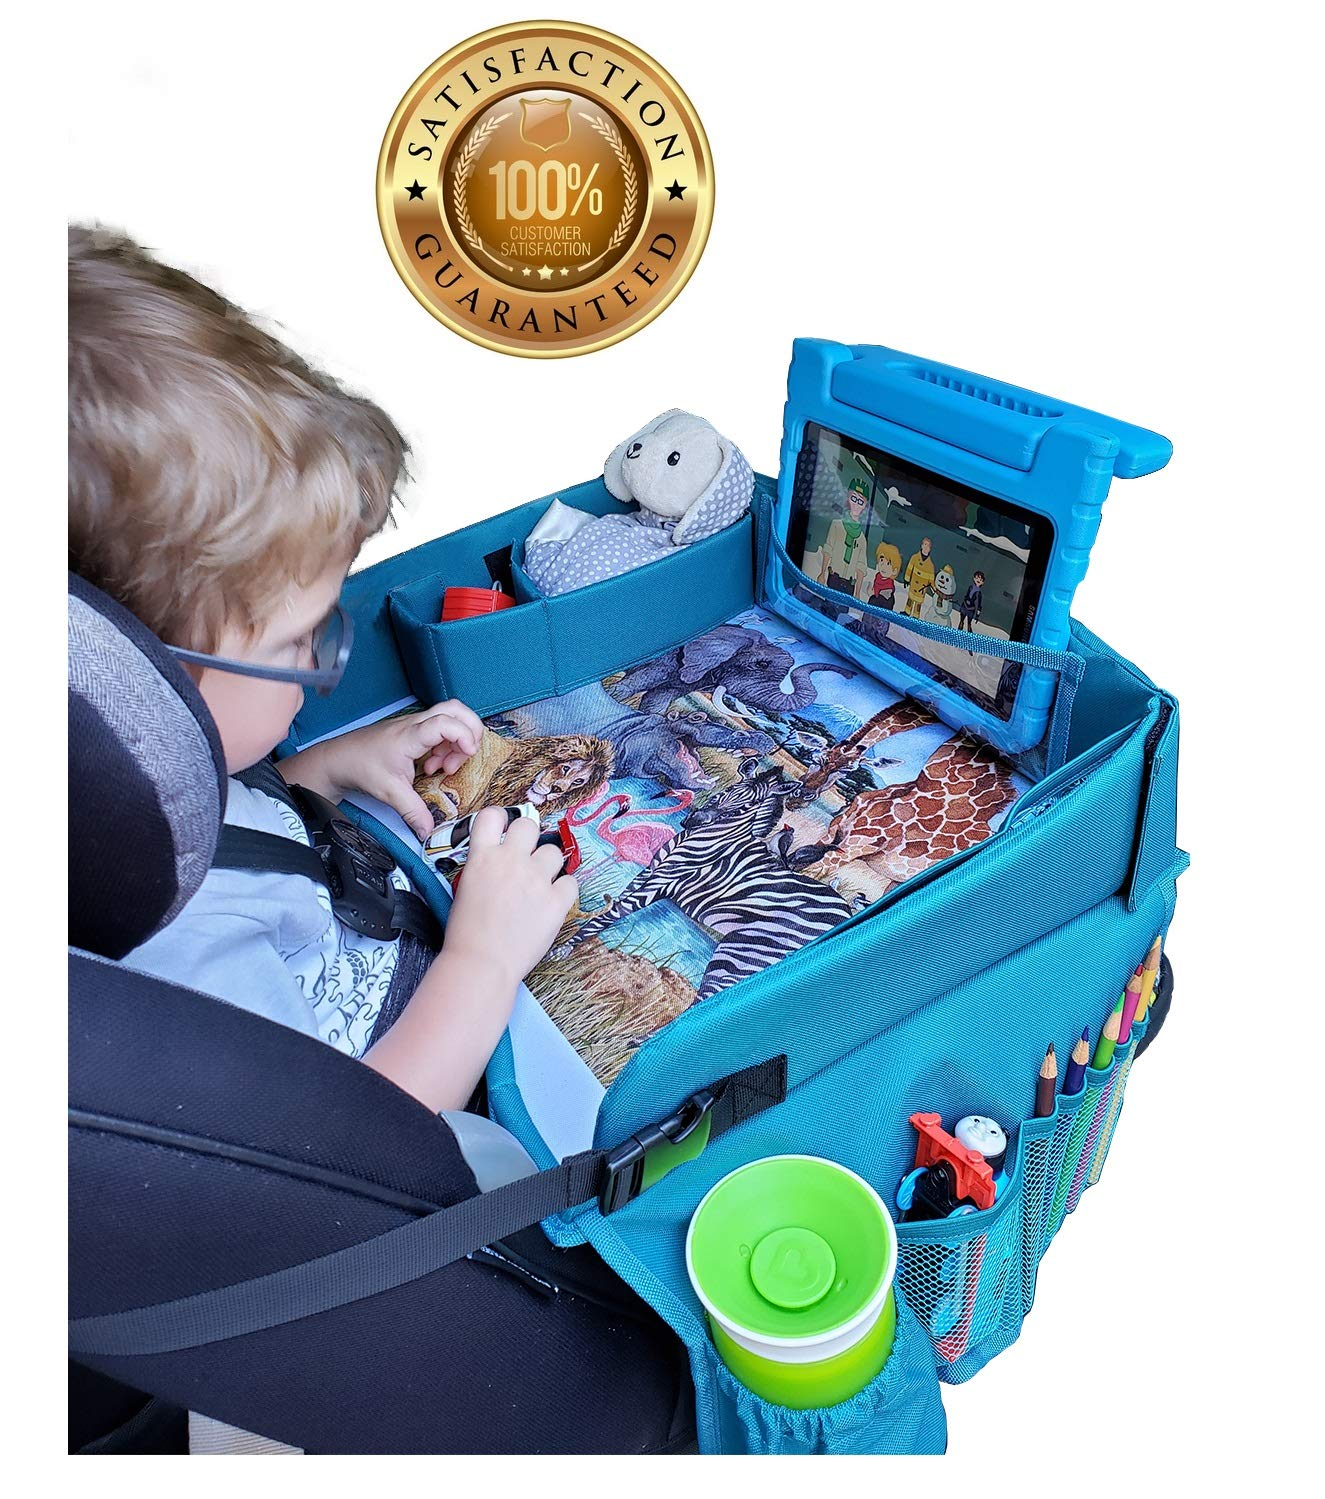 Travel Tykes Car Seat Tray - Sturdy Portable Activity Organizer Table Keeps Snacks Toys Within Child's Reach Girl or Boy | Toddler Kids Booster Seat Travel Lap Tray for Stroller Car Plane by Travel Tykes